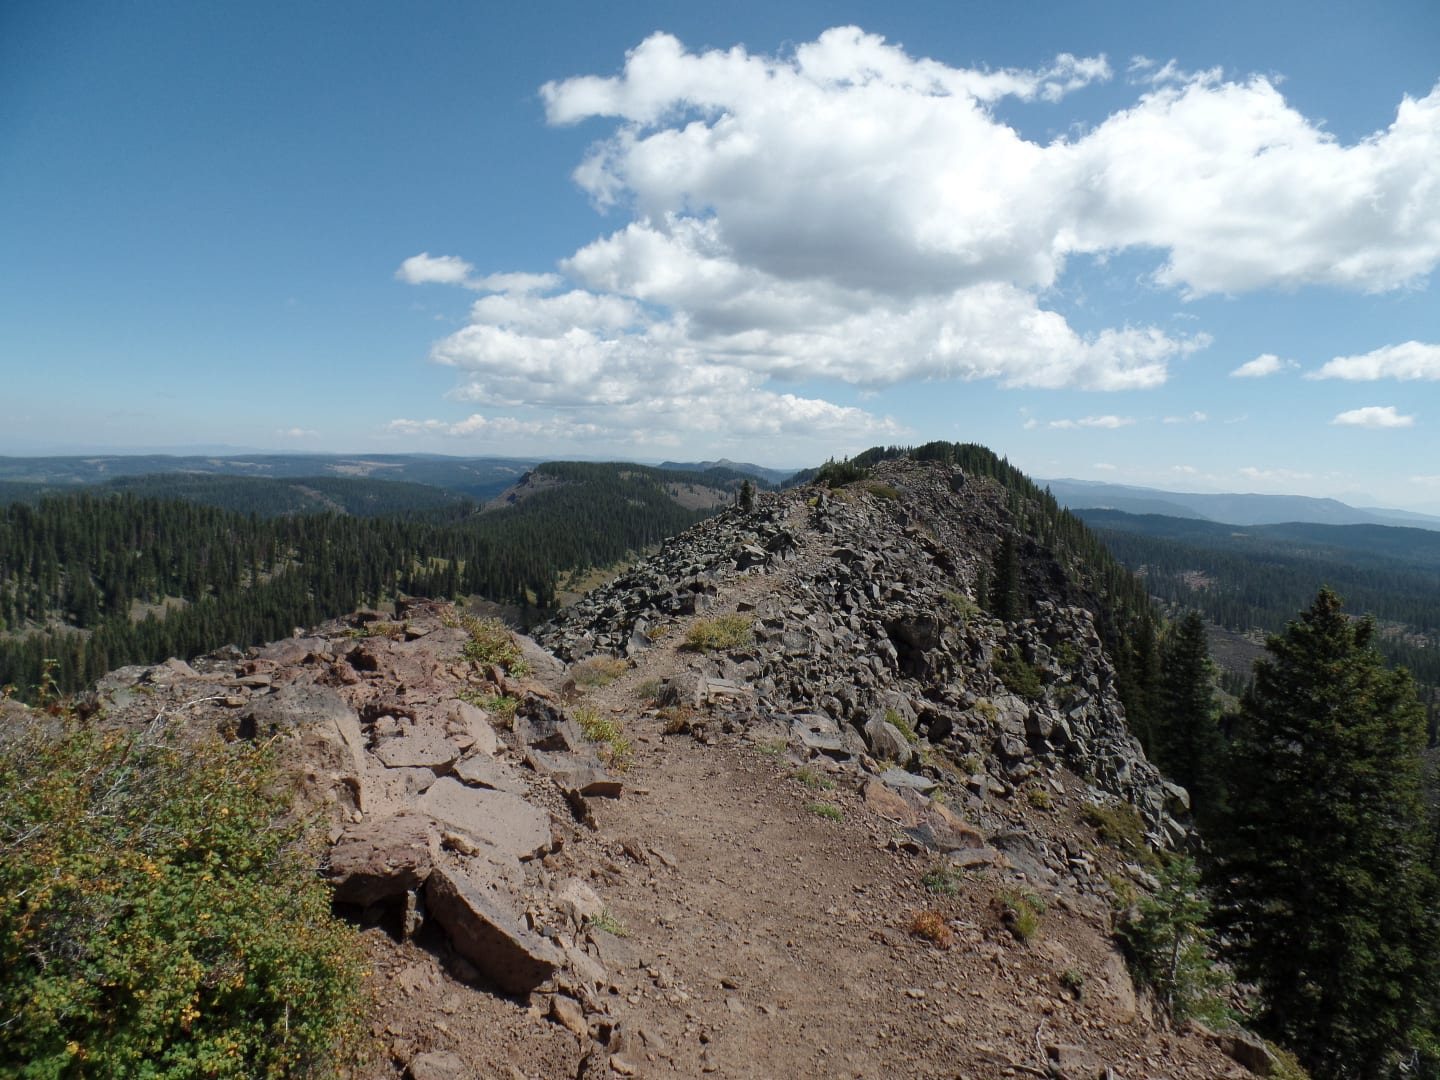 Crag Crest Trail Panoramic Overlook